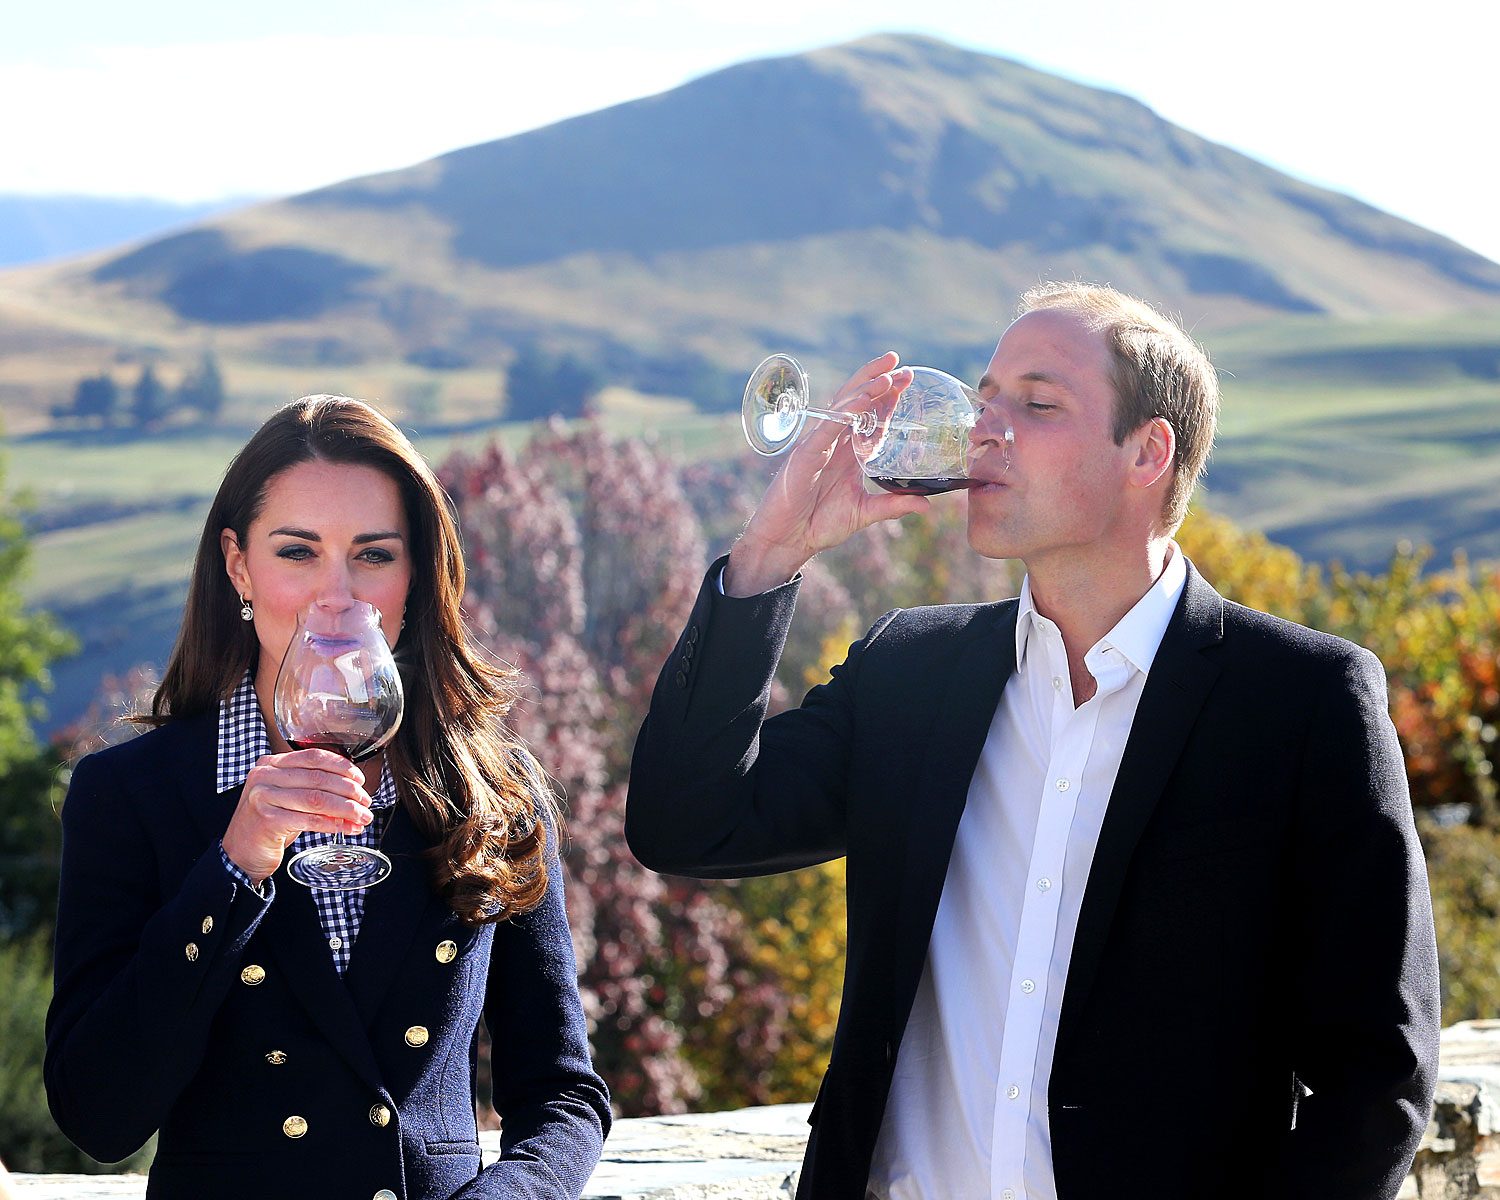 Kate Middleton PRince William 1500 - Date Prince William Got Married